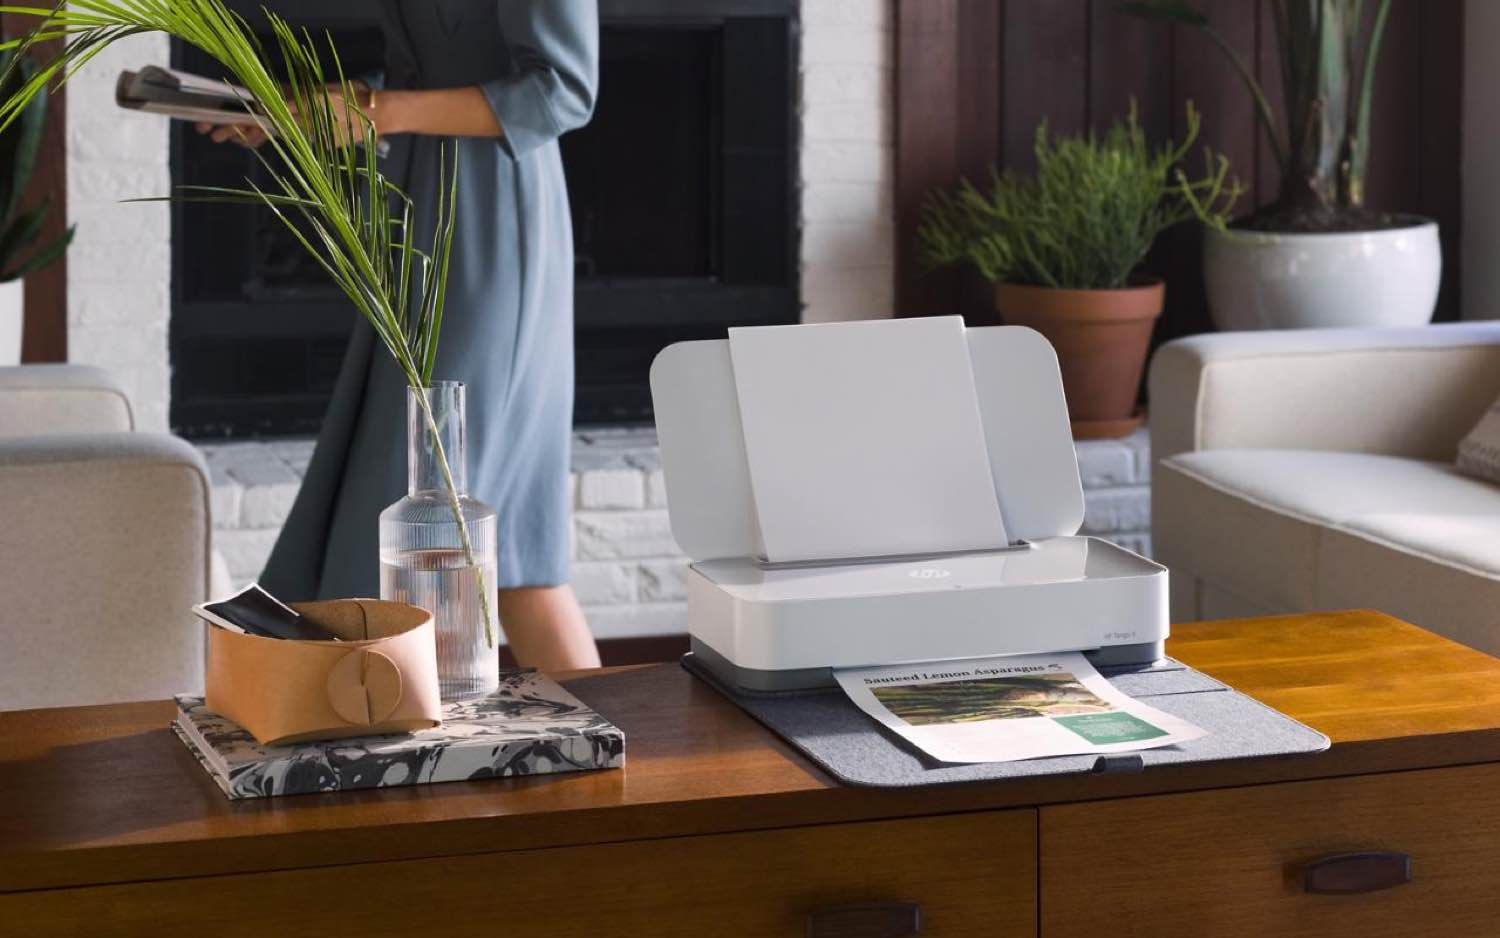 HP Tango X: best smart printer for smartphones and tablets